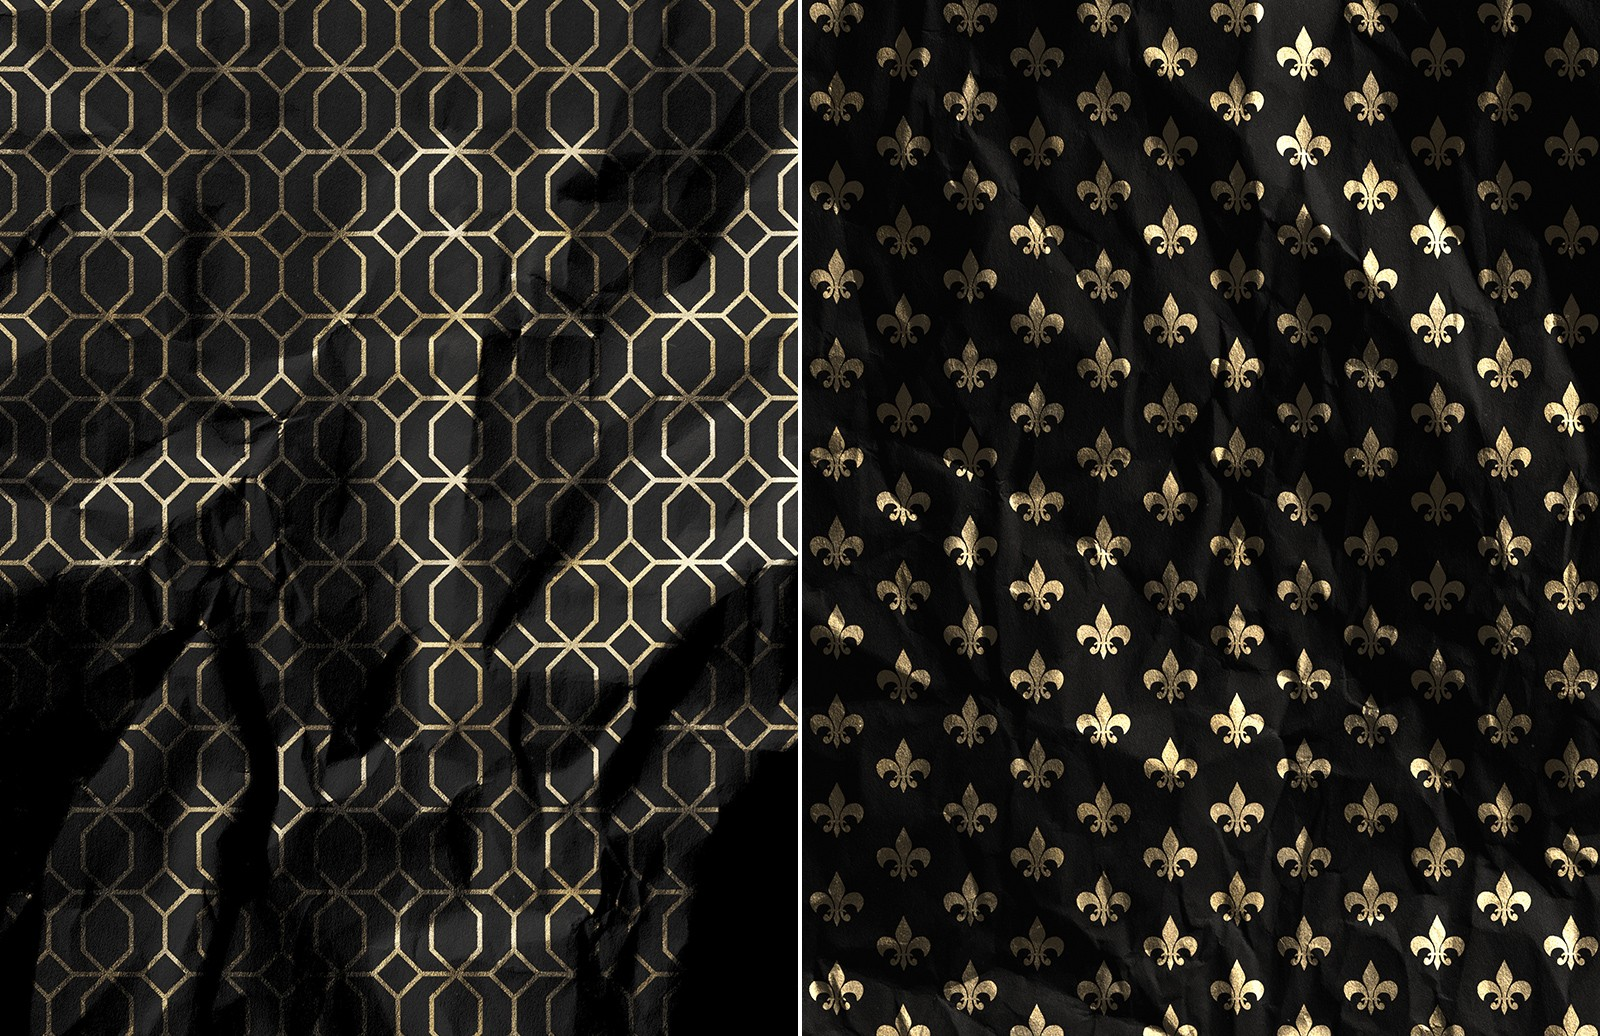 Large Gold  Foil  Paper  Textures  Preview 4